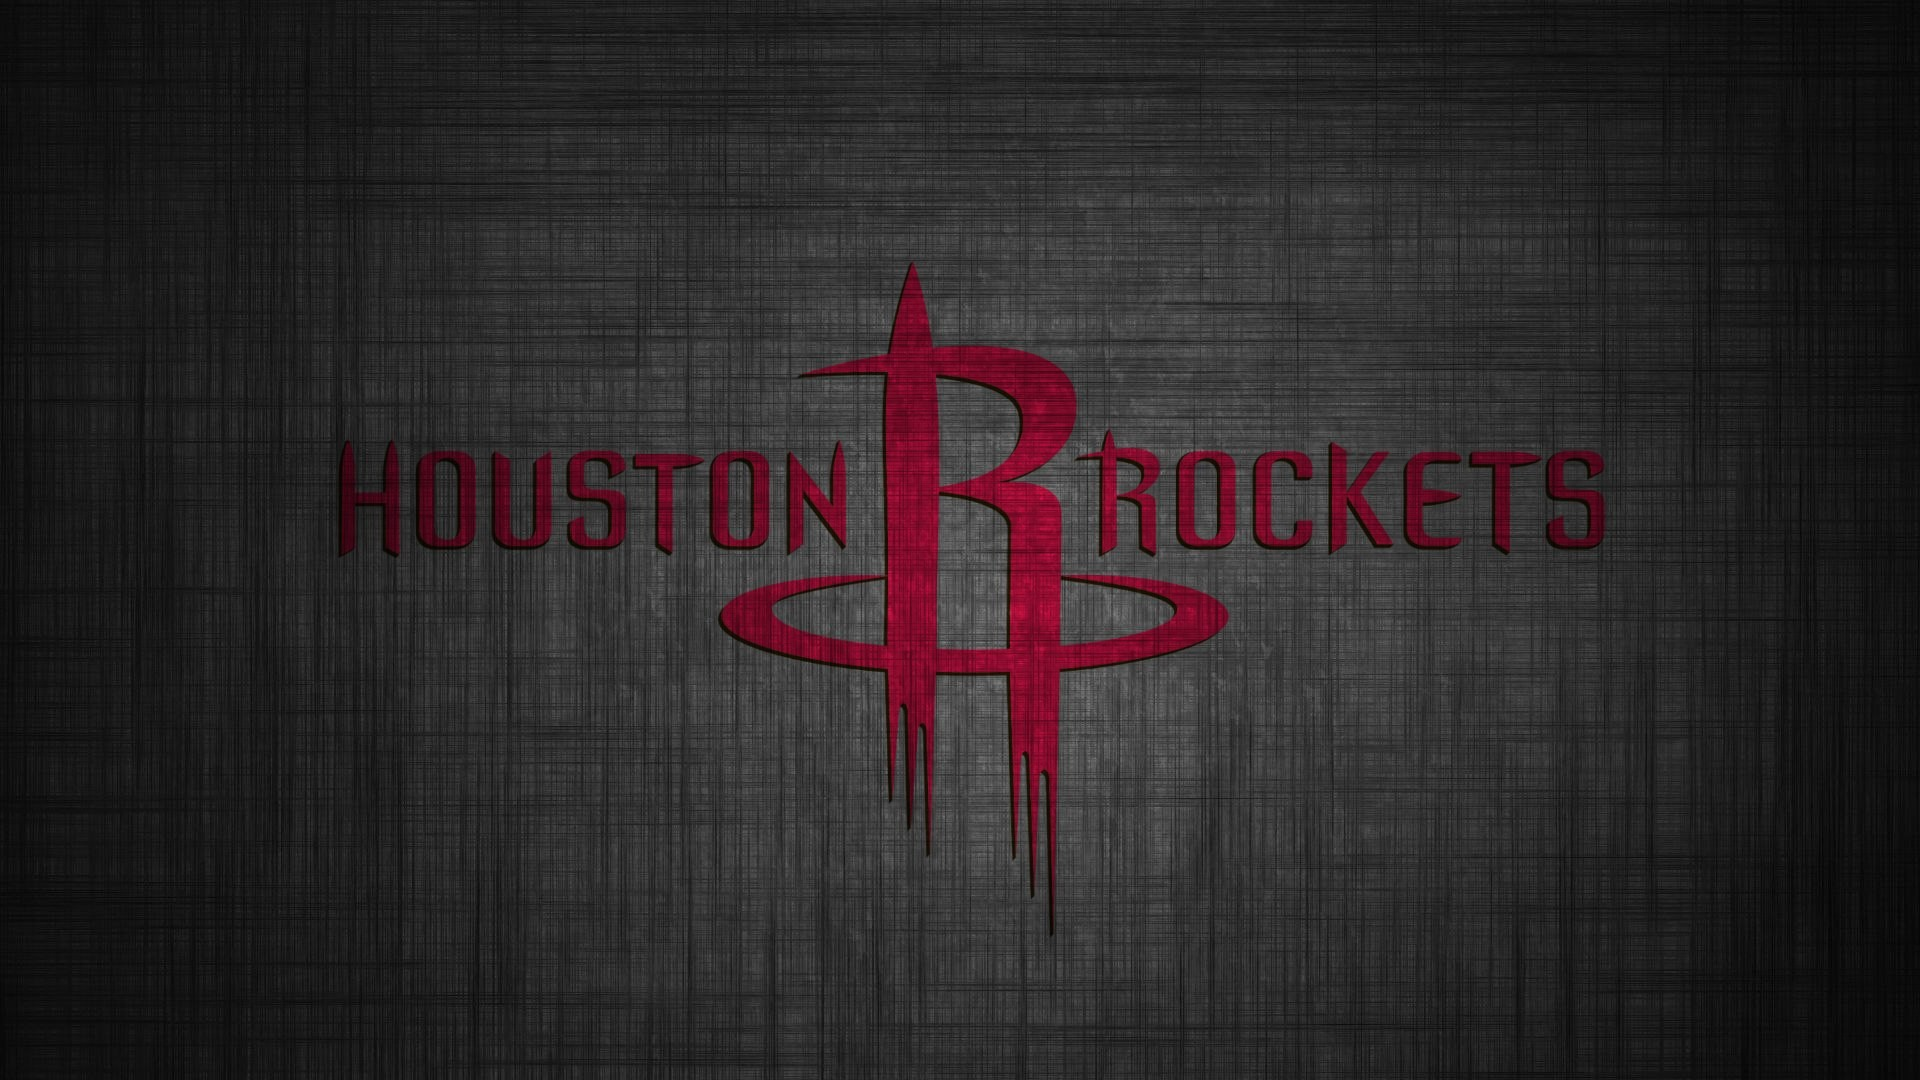 1920x1080 Houston Rockets Wallpapers - Wallpaper Cave | Free Wallpapers | Pinterest |  Wallpaper